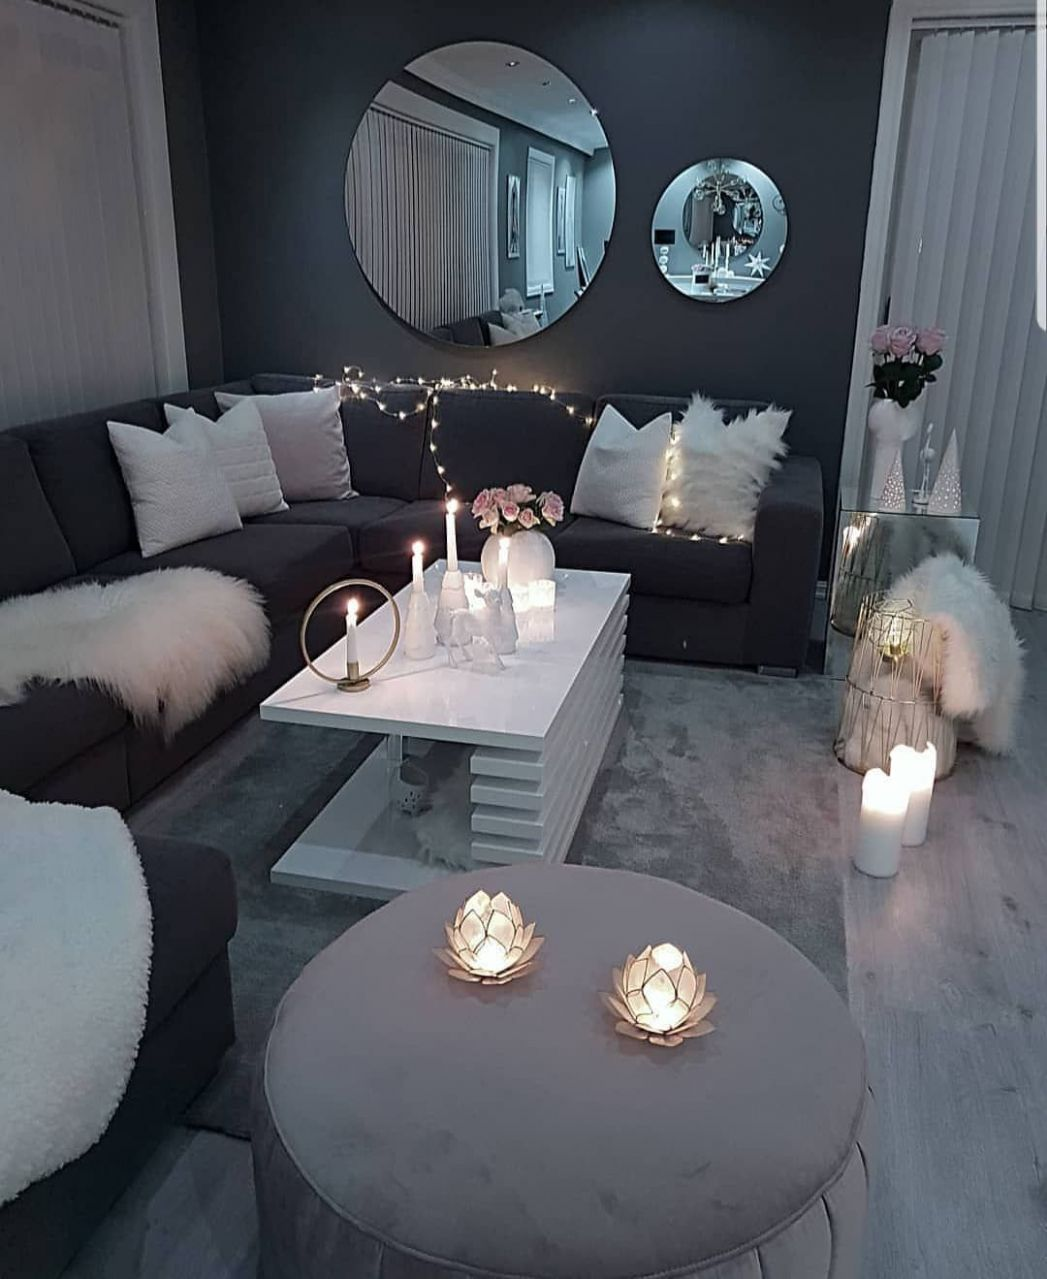 Instagram (With images) | Living room decor cozy, Living room ..